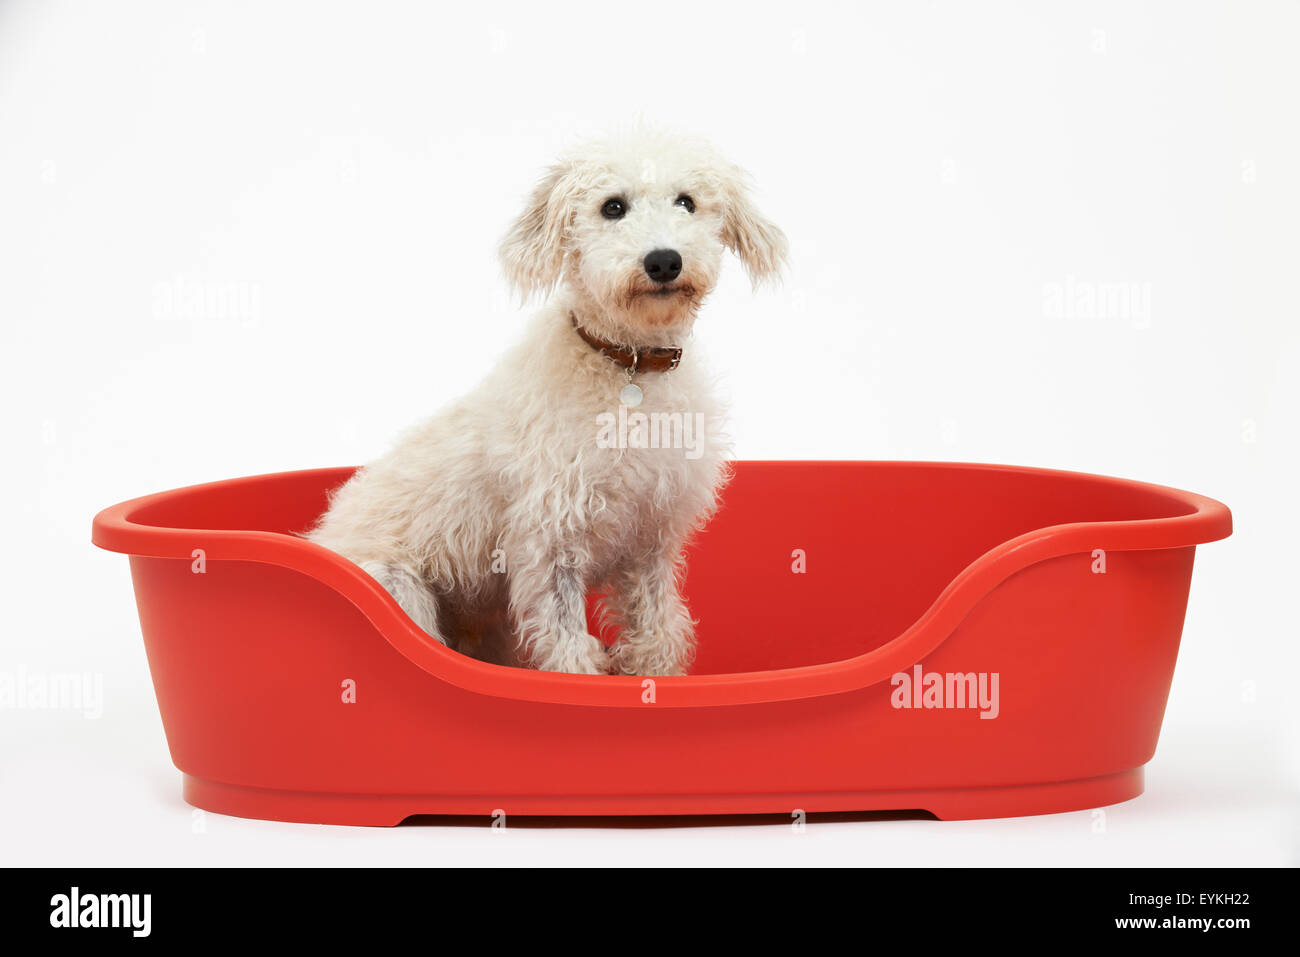 Studio Shot Of White Pet Lurcher Sitting In Red Dog Bed - Stock Image